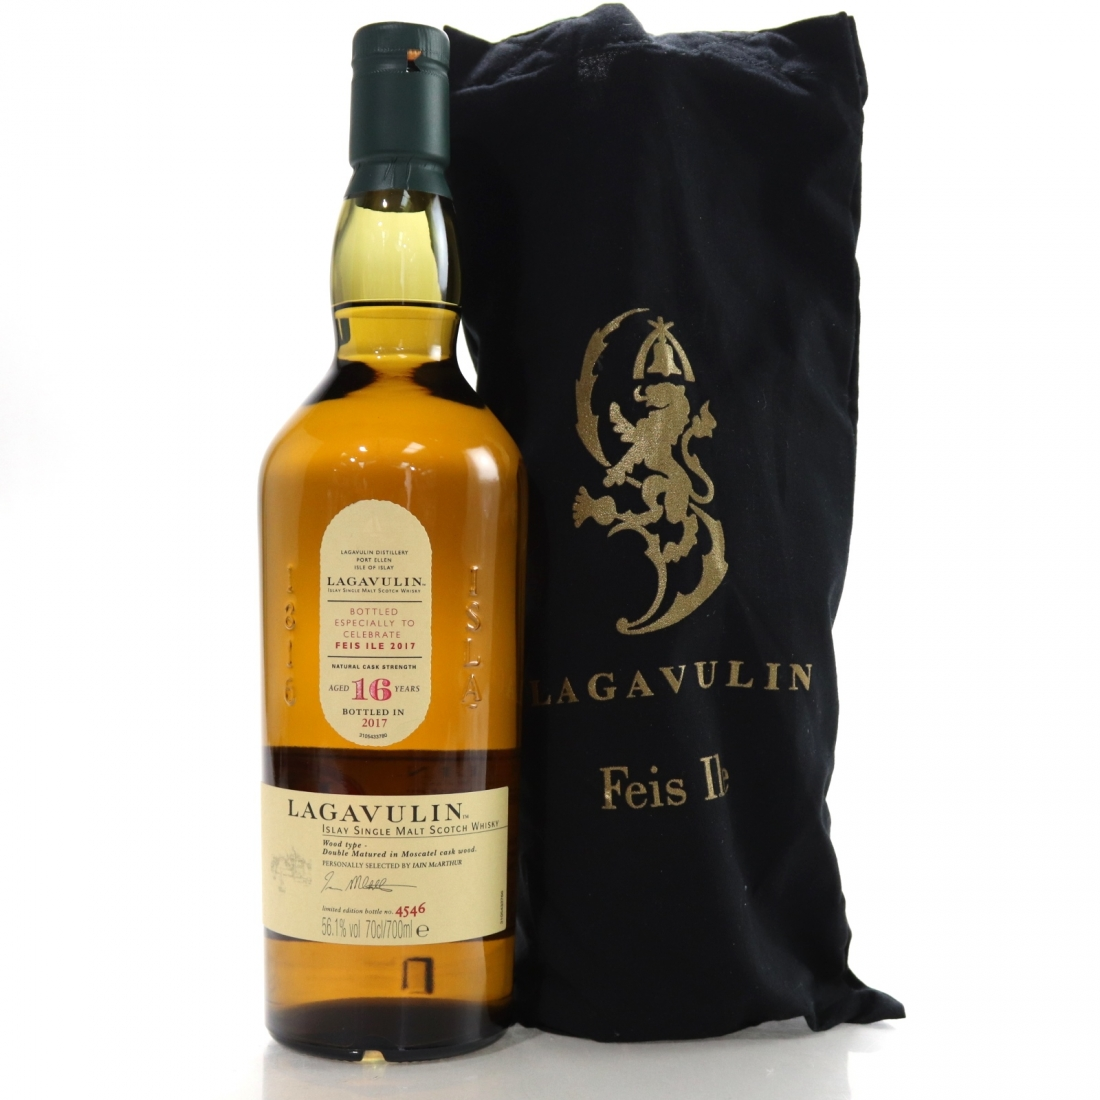 Lagavulin 16 Year Old Cask Strength / Feis Ile 2017